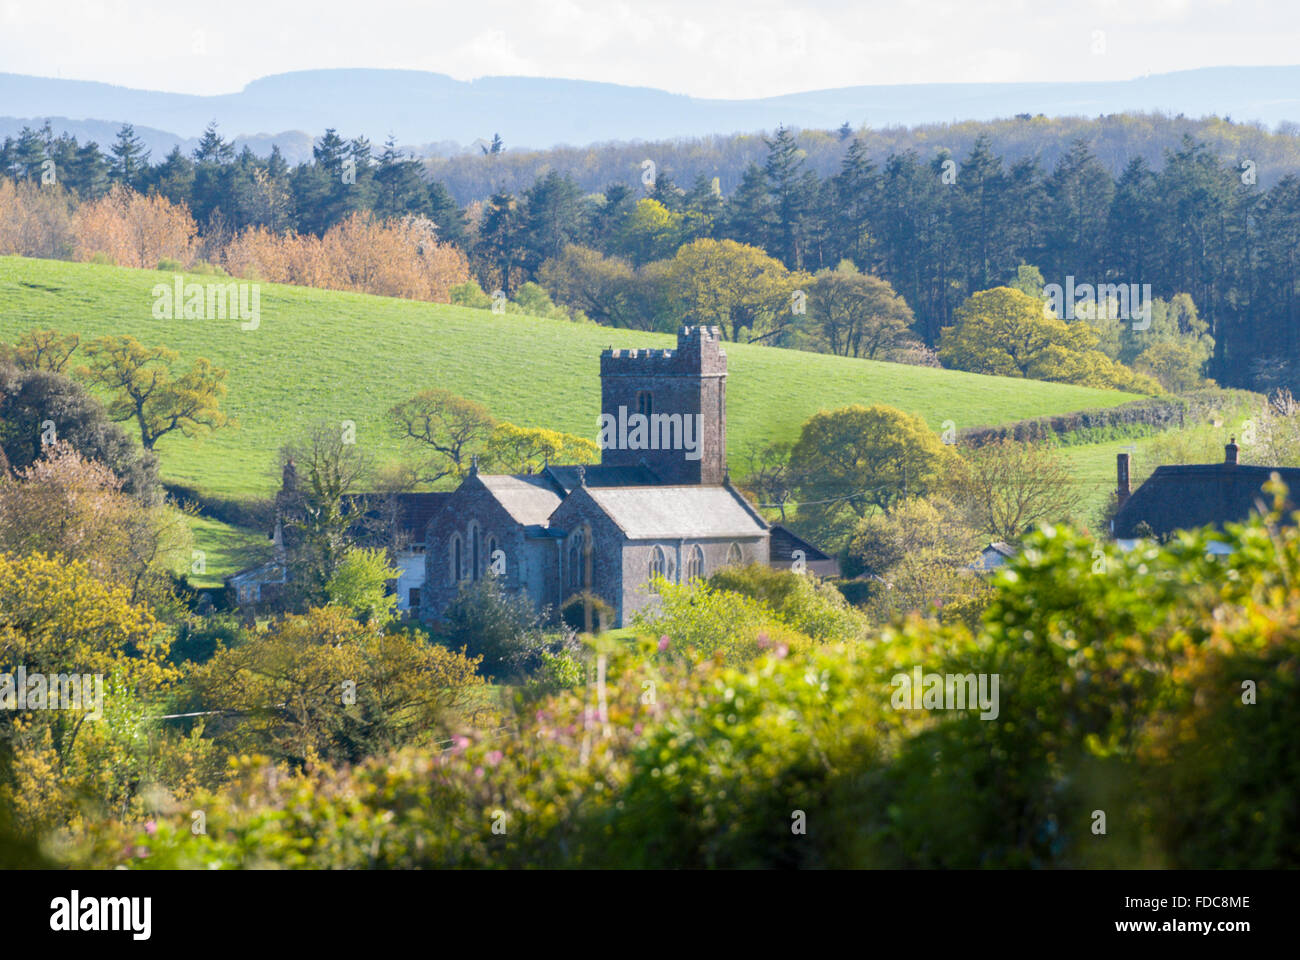 Stockleigh Pomeroy church in the rural countryside near Crediton, Devon, England, UK - Stock Image